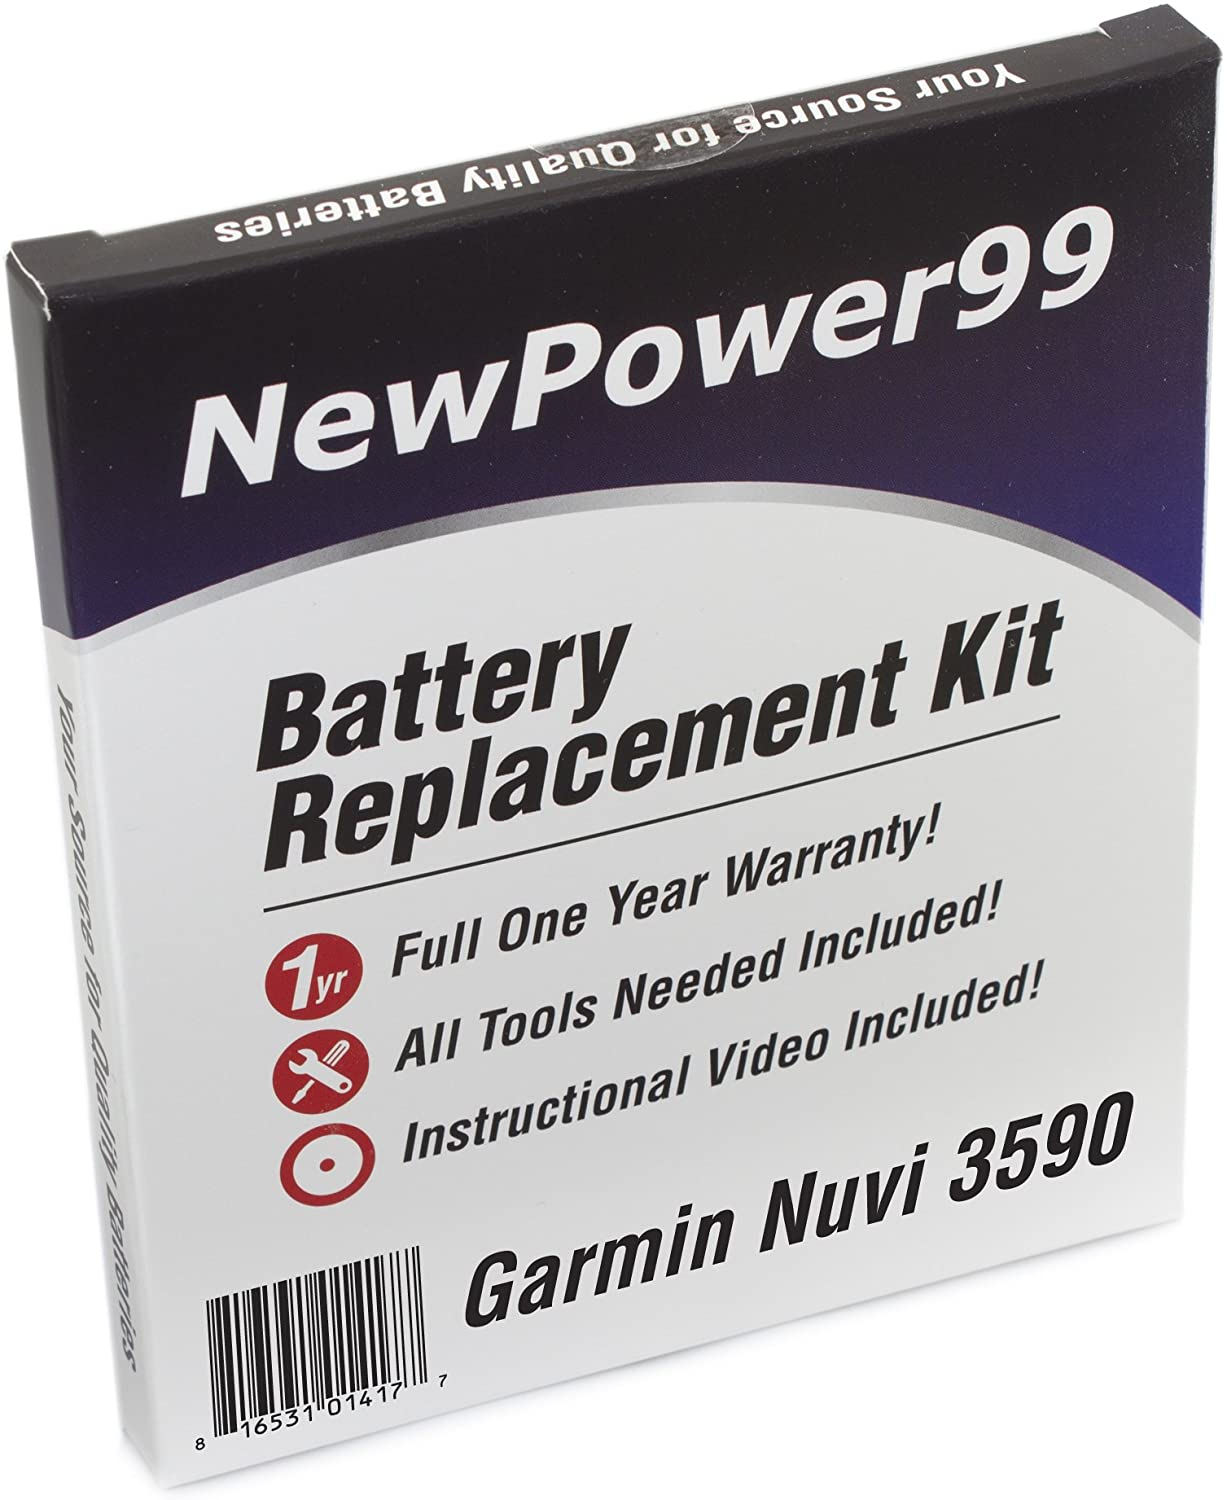 NewPower99 Battery Replacement Kit with Battery, Video Instructions and Tools for Garmin Nuvi 3590